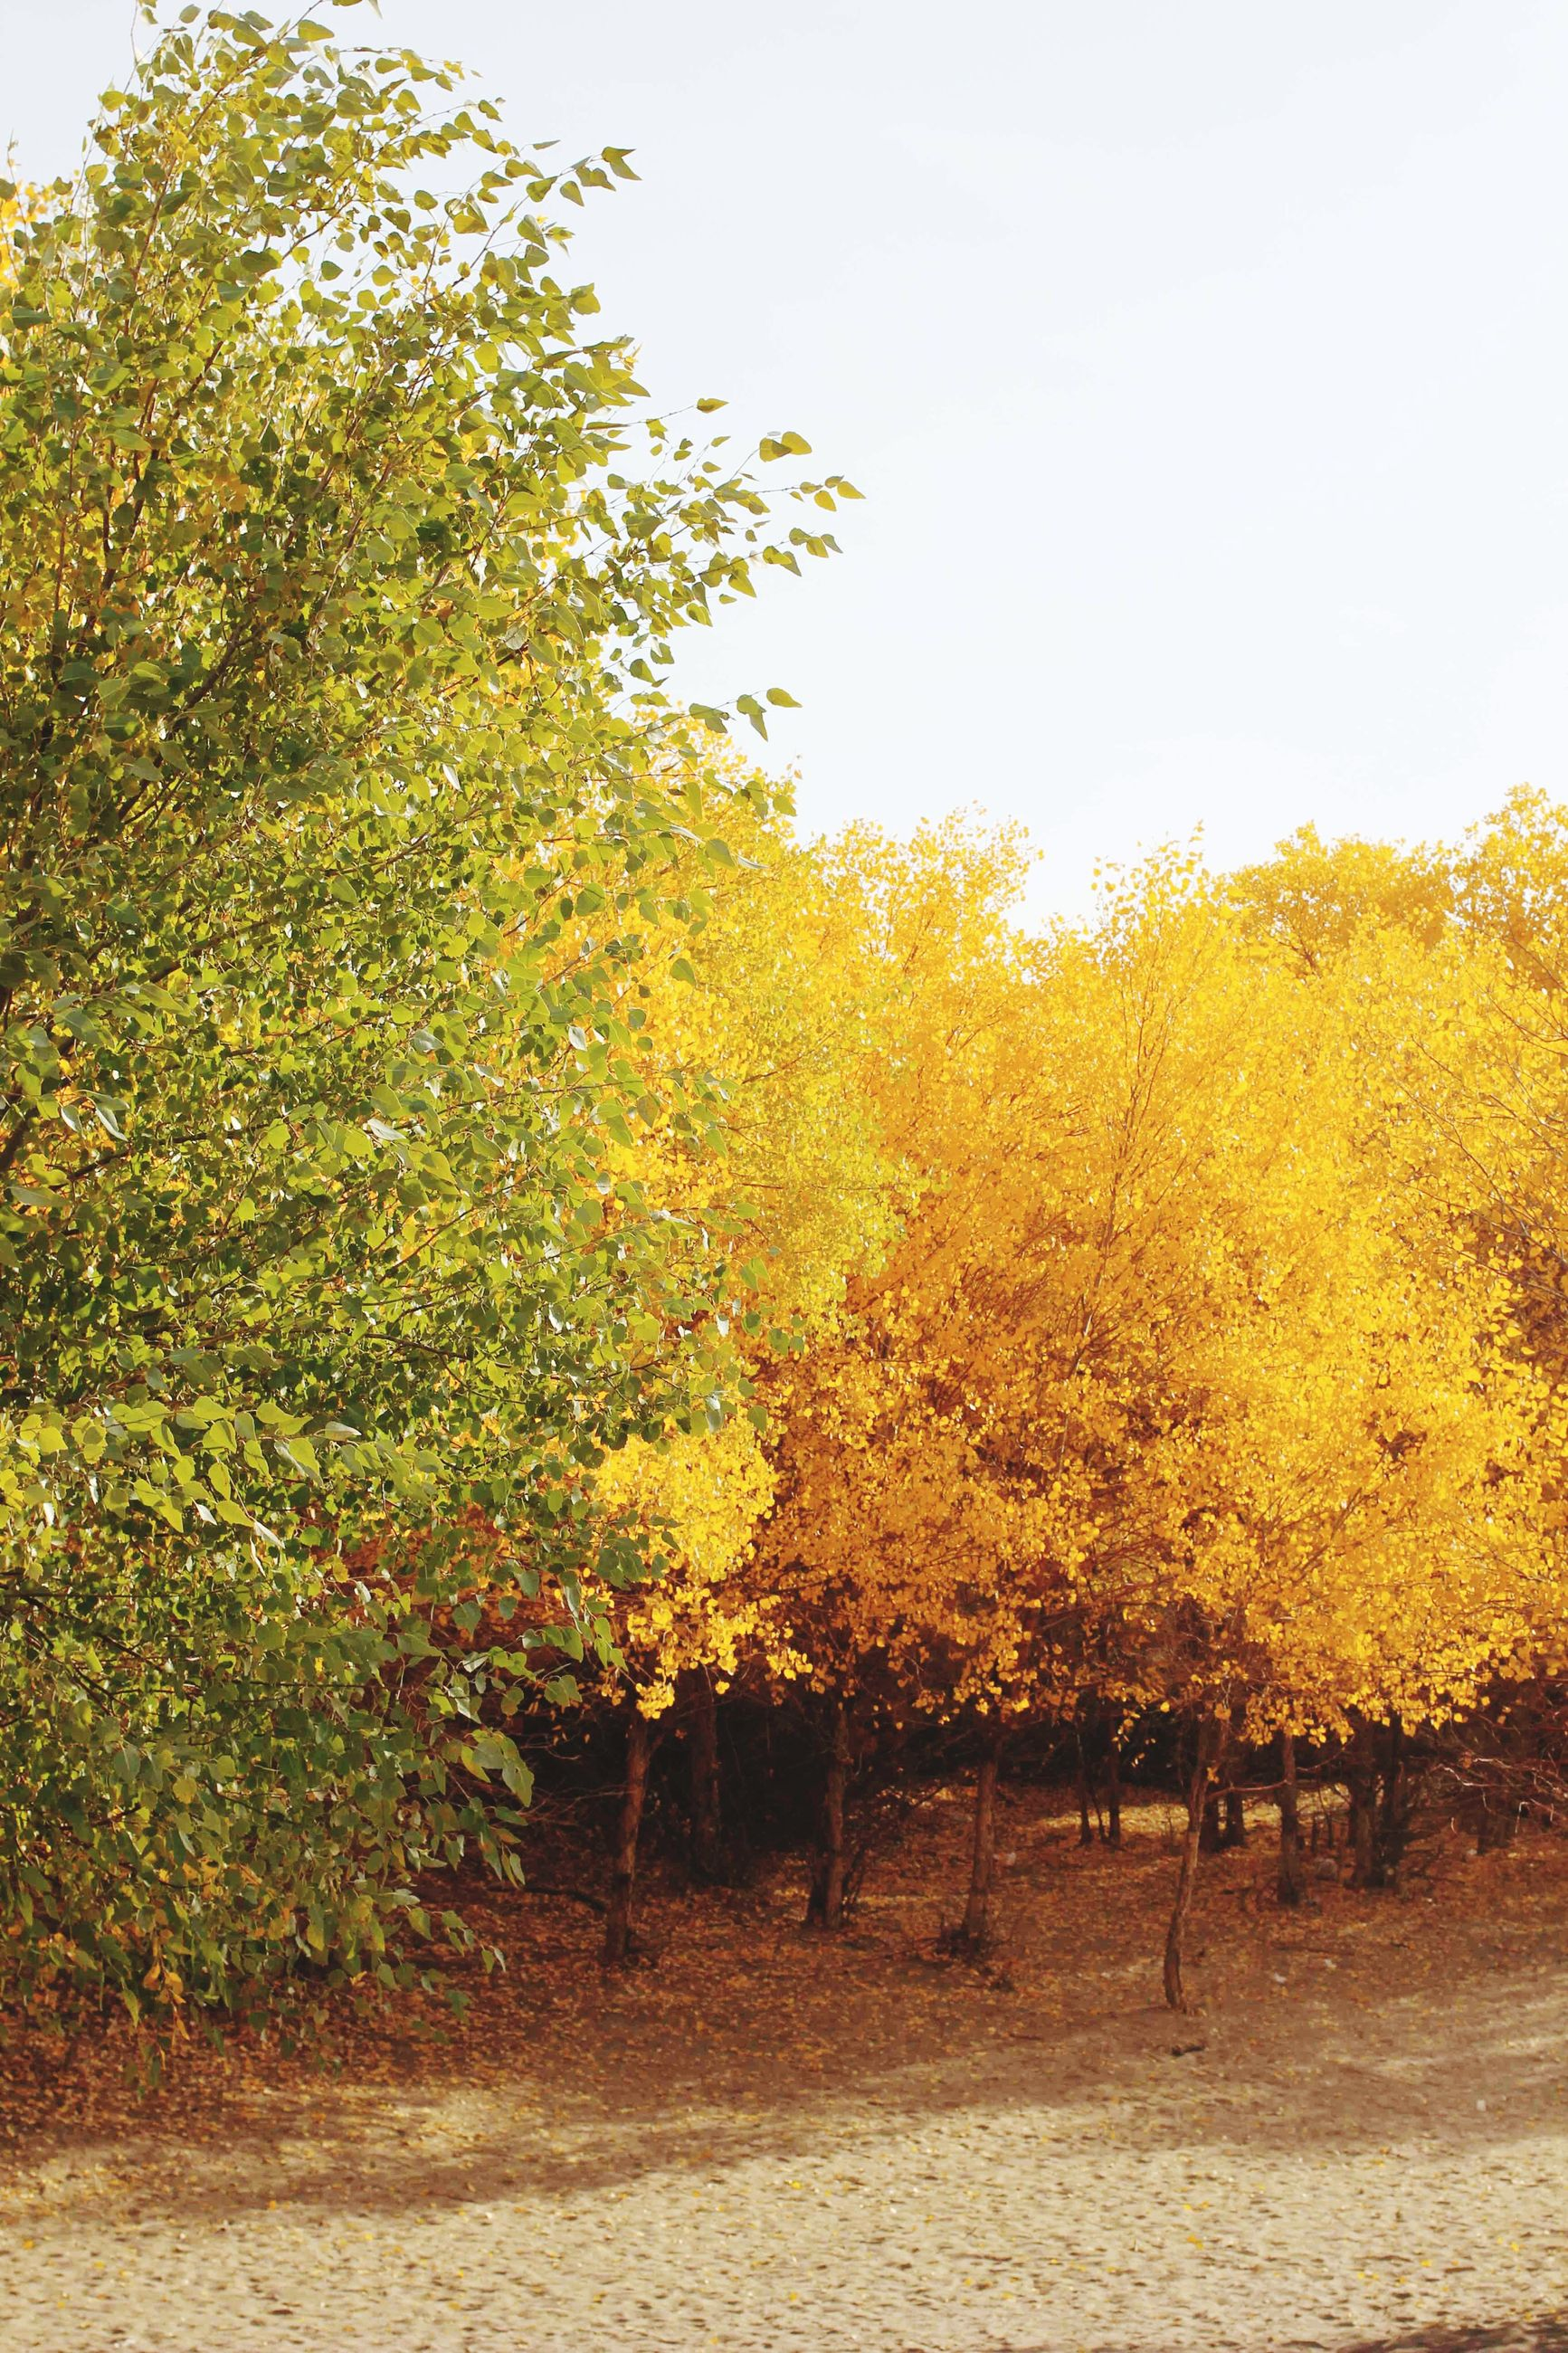 tree, nature, tranquility, beauty in nature, growth, autumn, tranquil scene, scenics, no people, field, landscape, outdoors, yellow, change, day, branch, sky